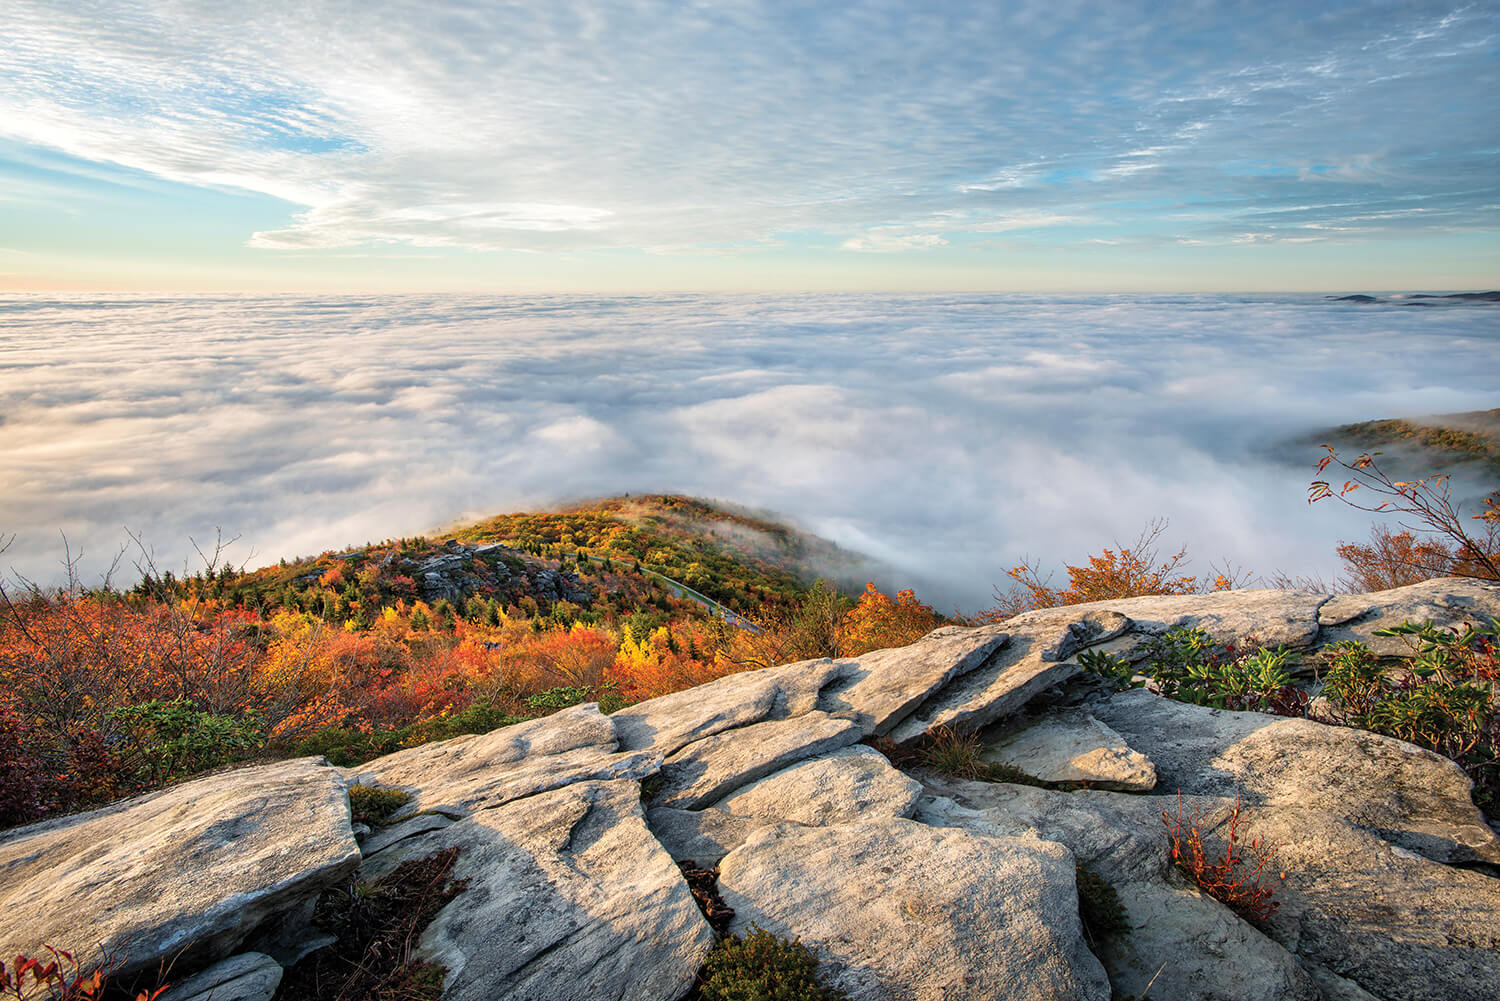 From this vantage point, the Blue Ridge Parkway is a mere thread. Photograph by Tommy White